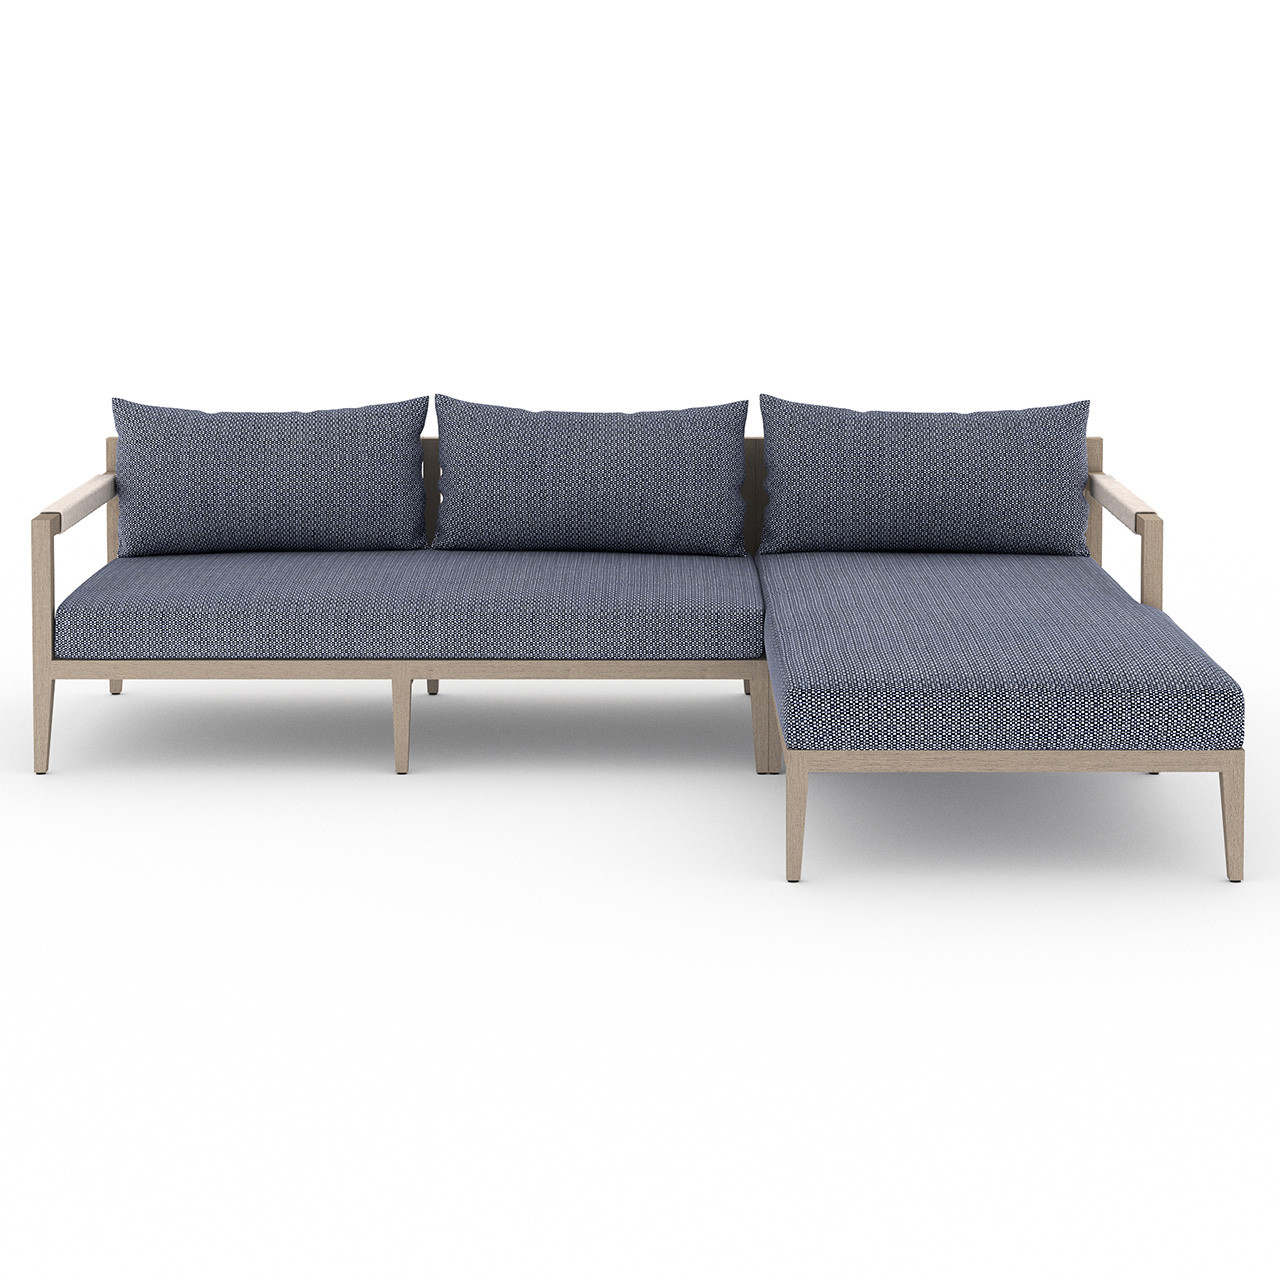 Silhouette Outdoor 2-Piece Sectional - Washed Brown